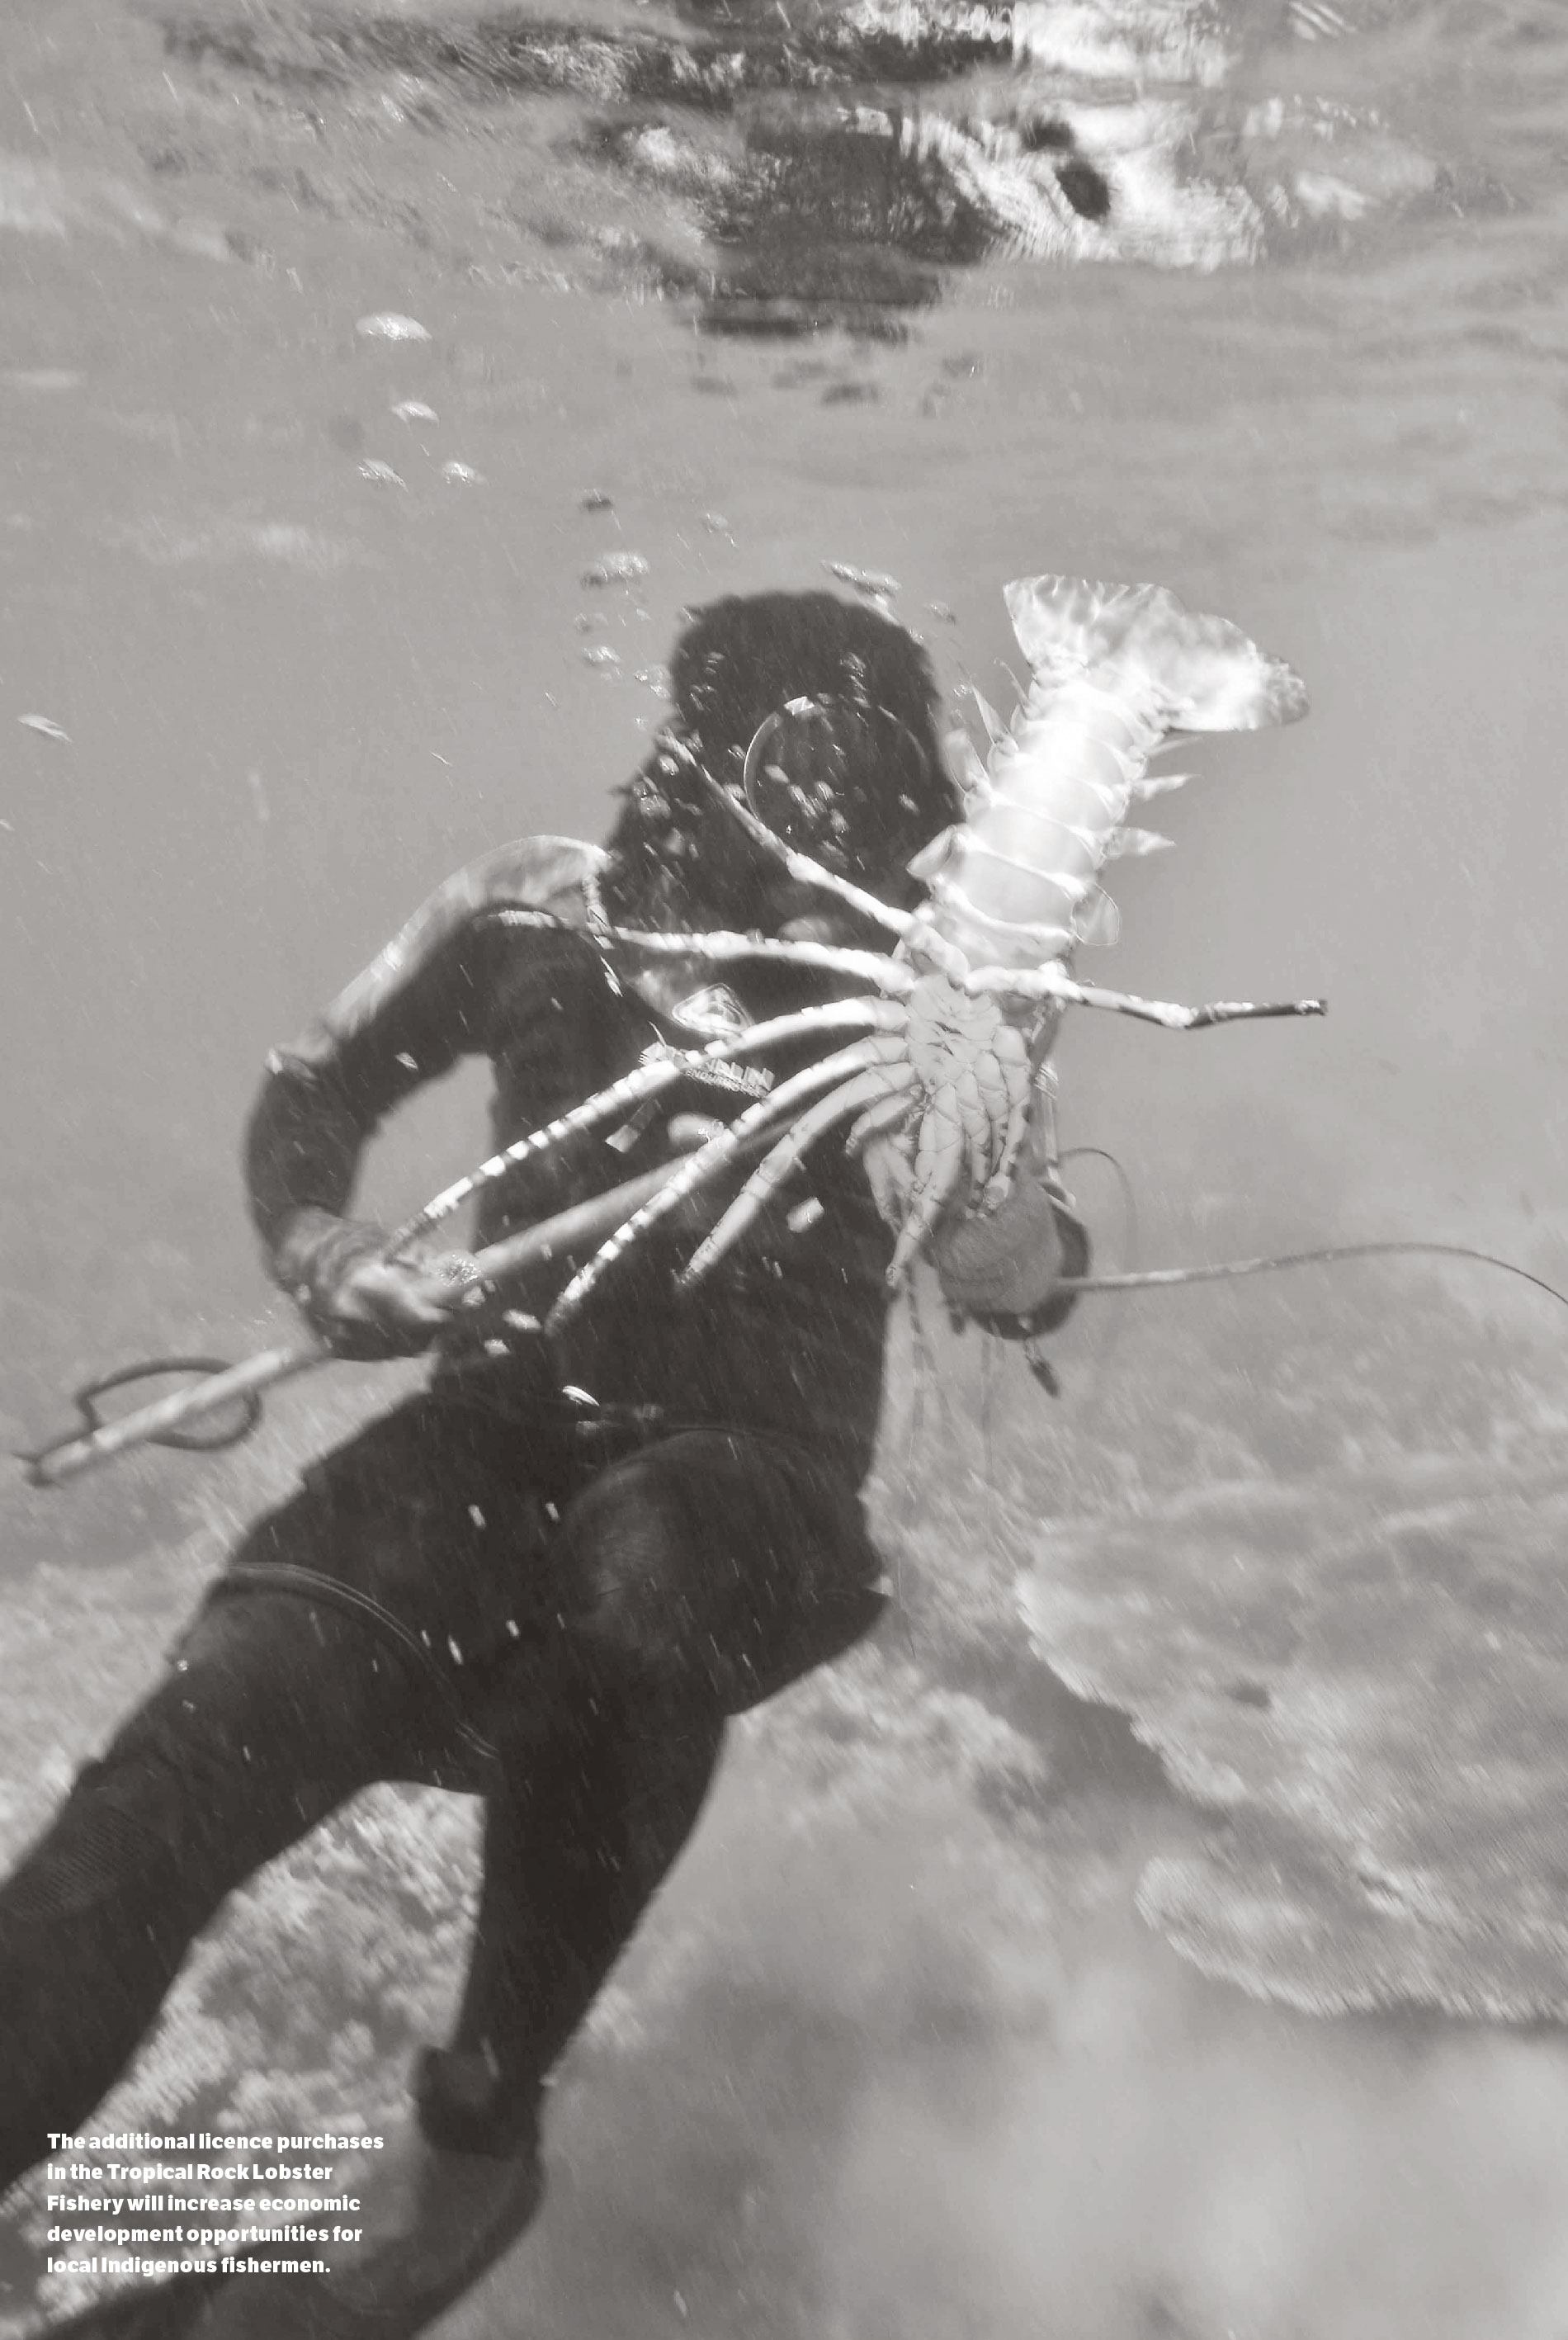 a photo of local Indigenous fishermen catching a lobster.